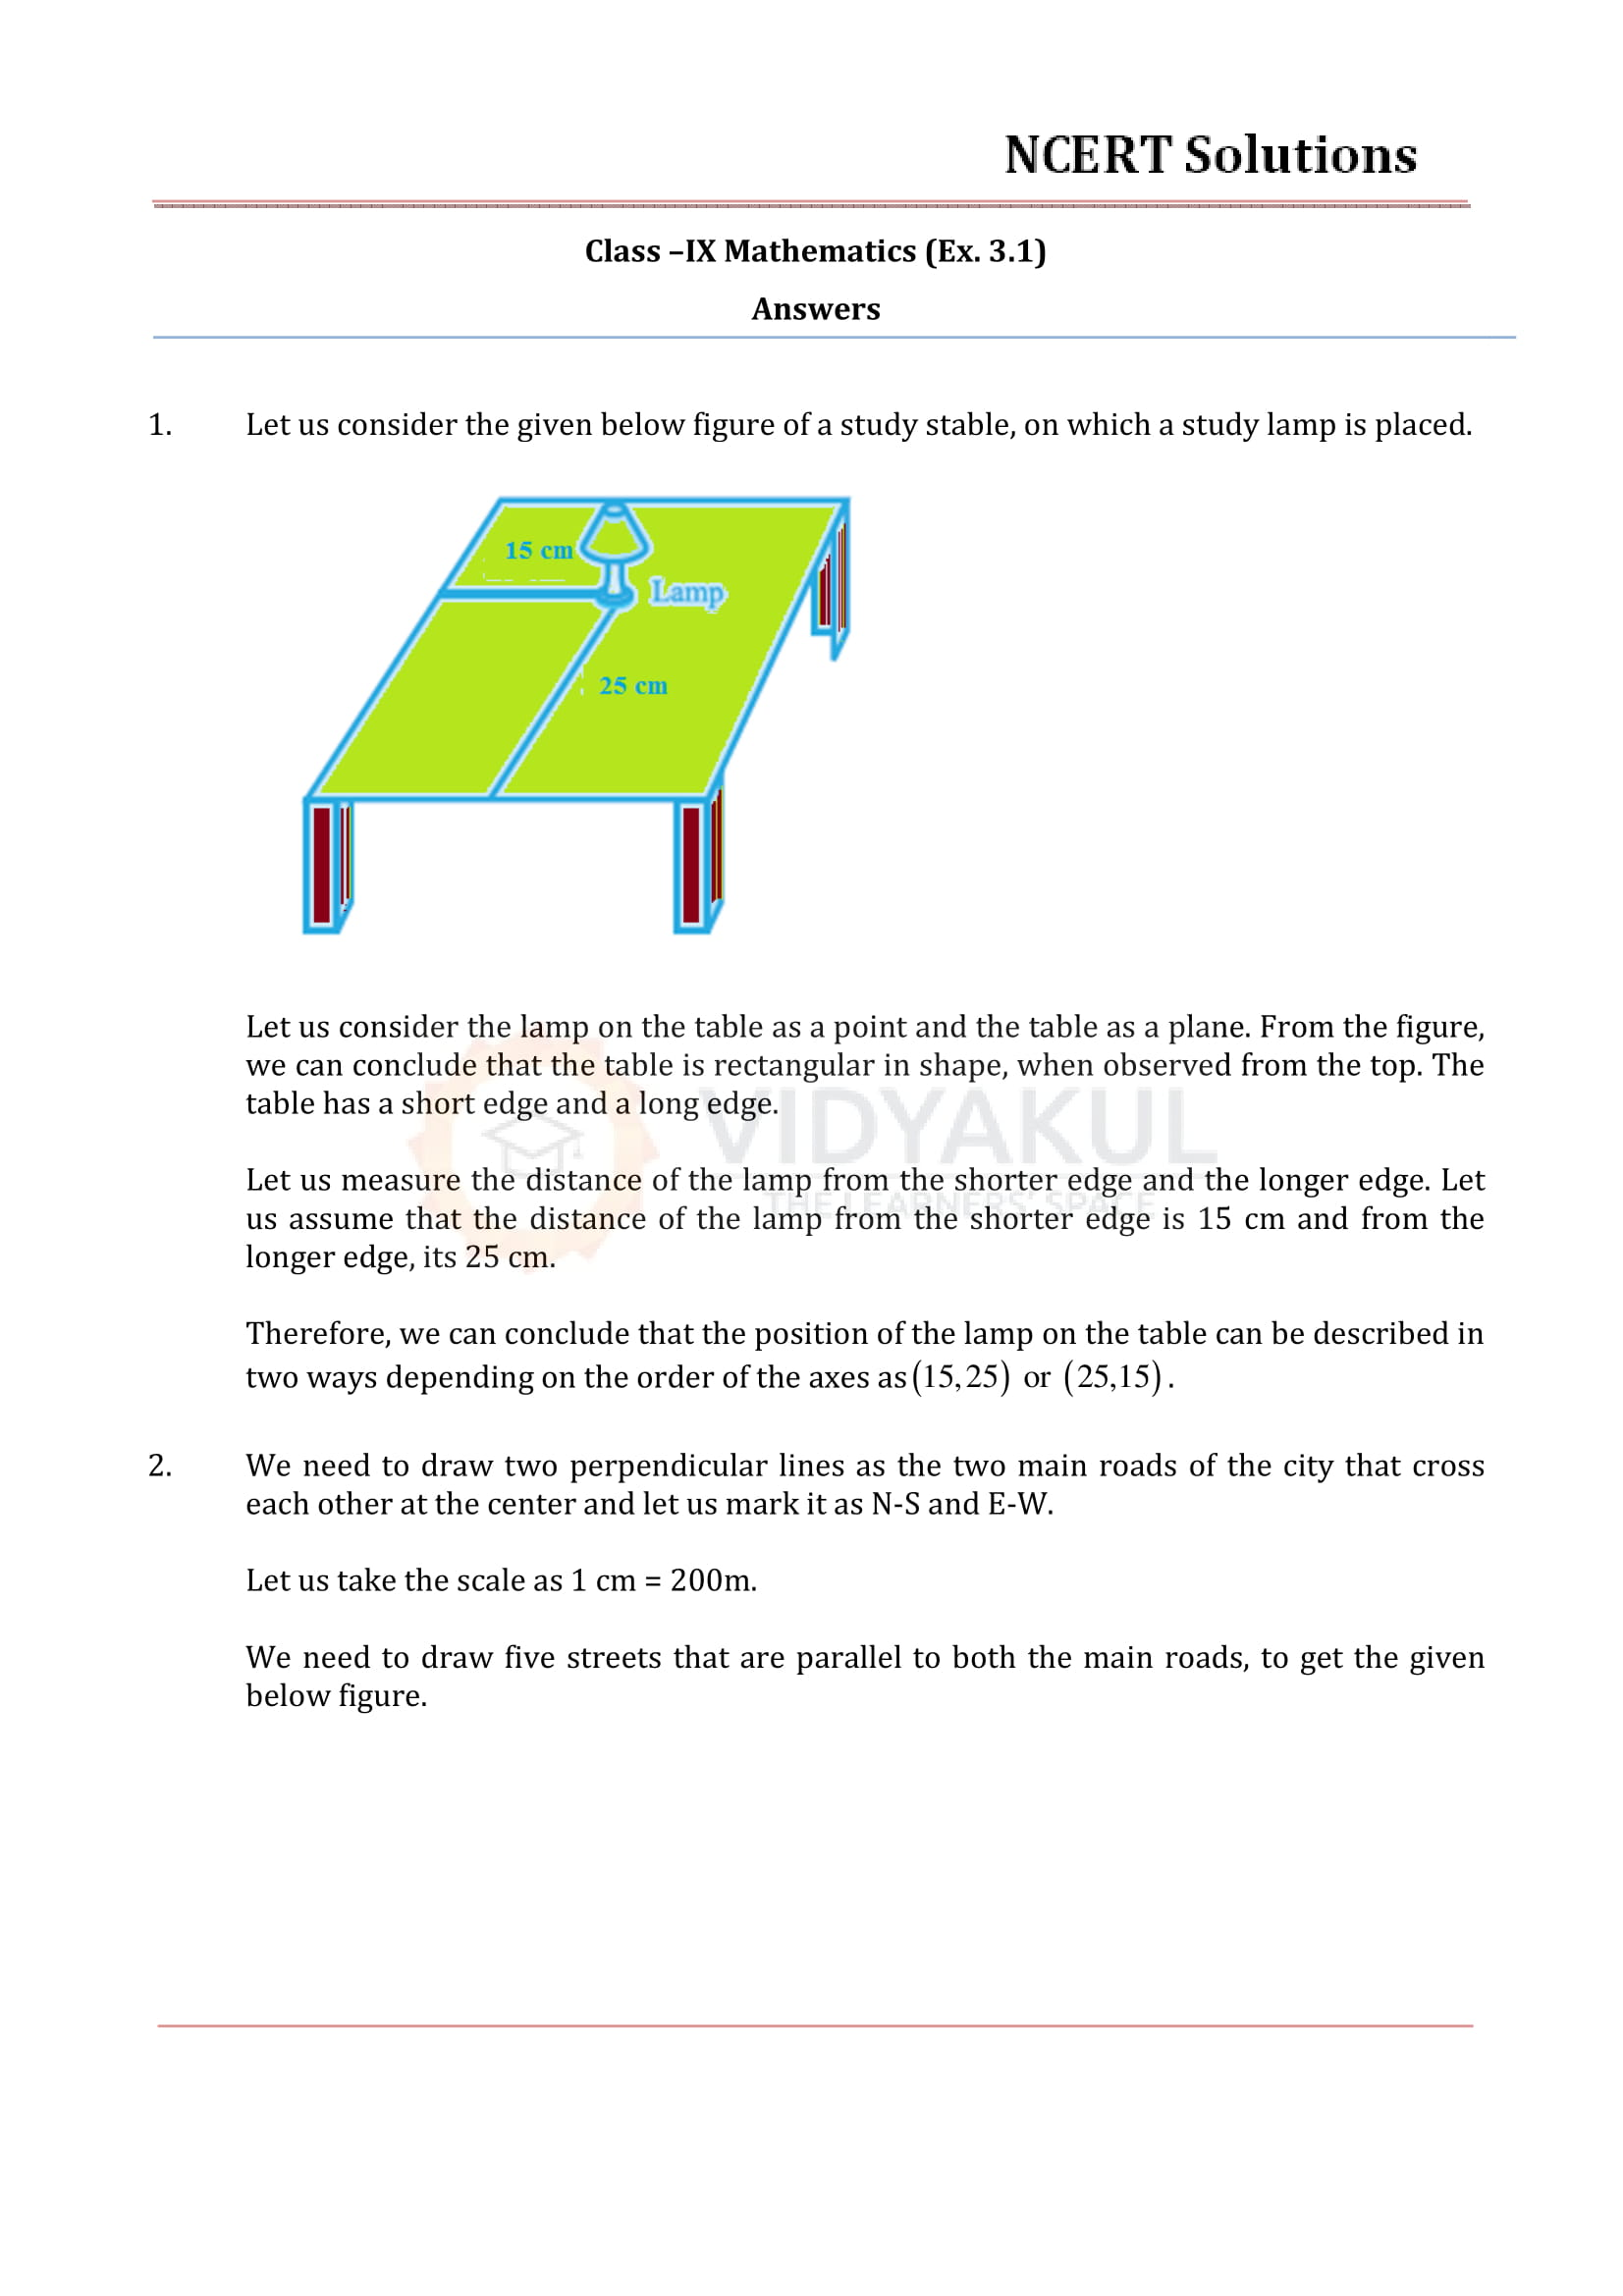 Ncert solutions for class 9 economics chapter 1 let discuss